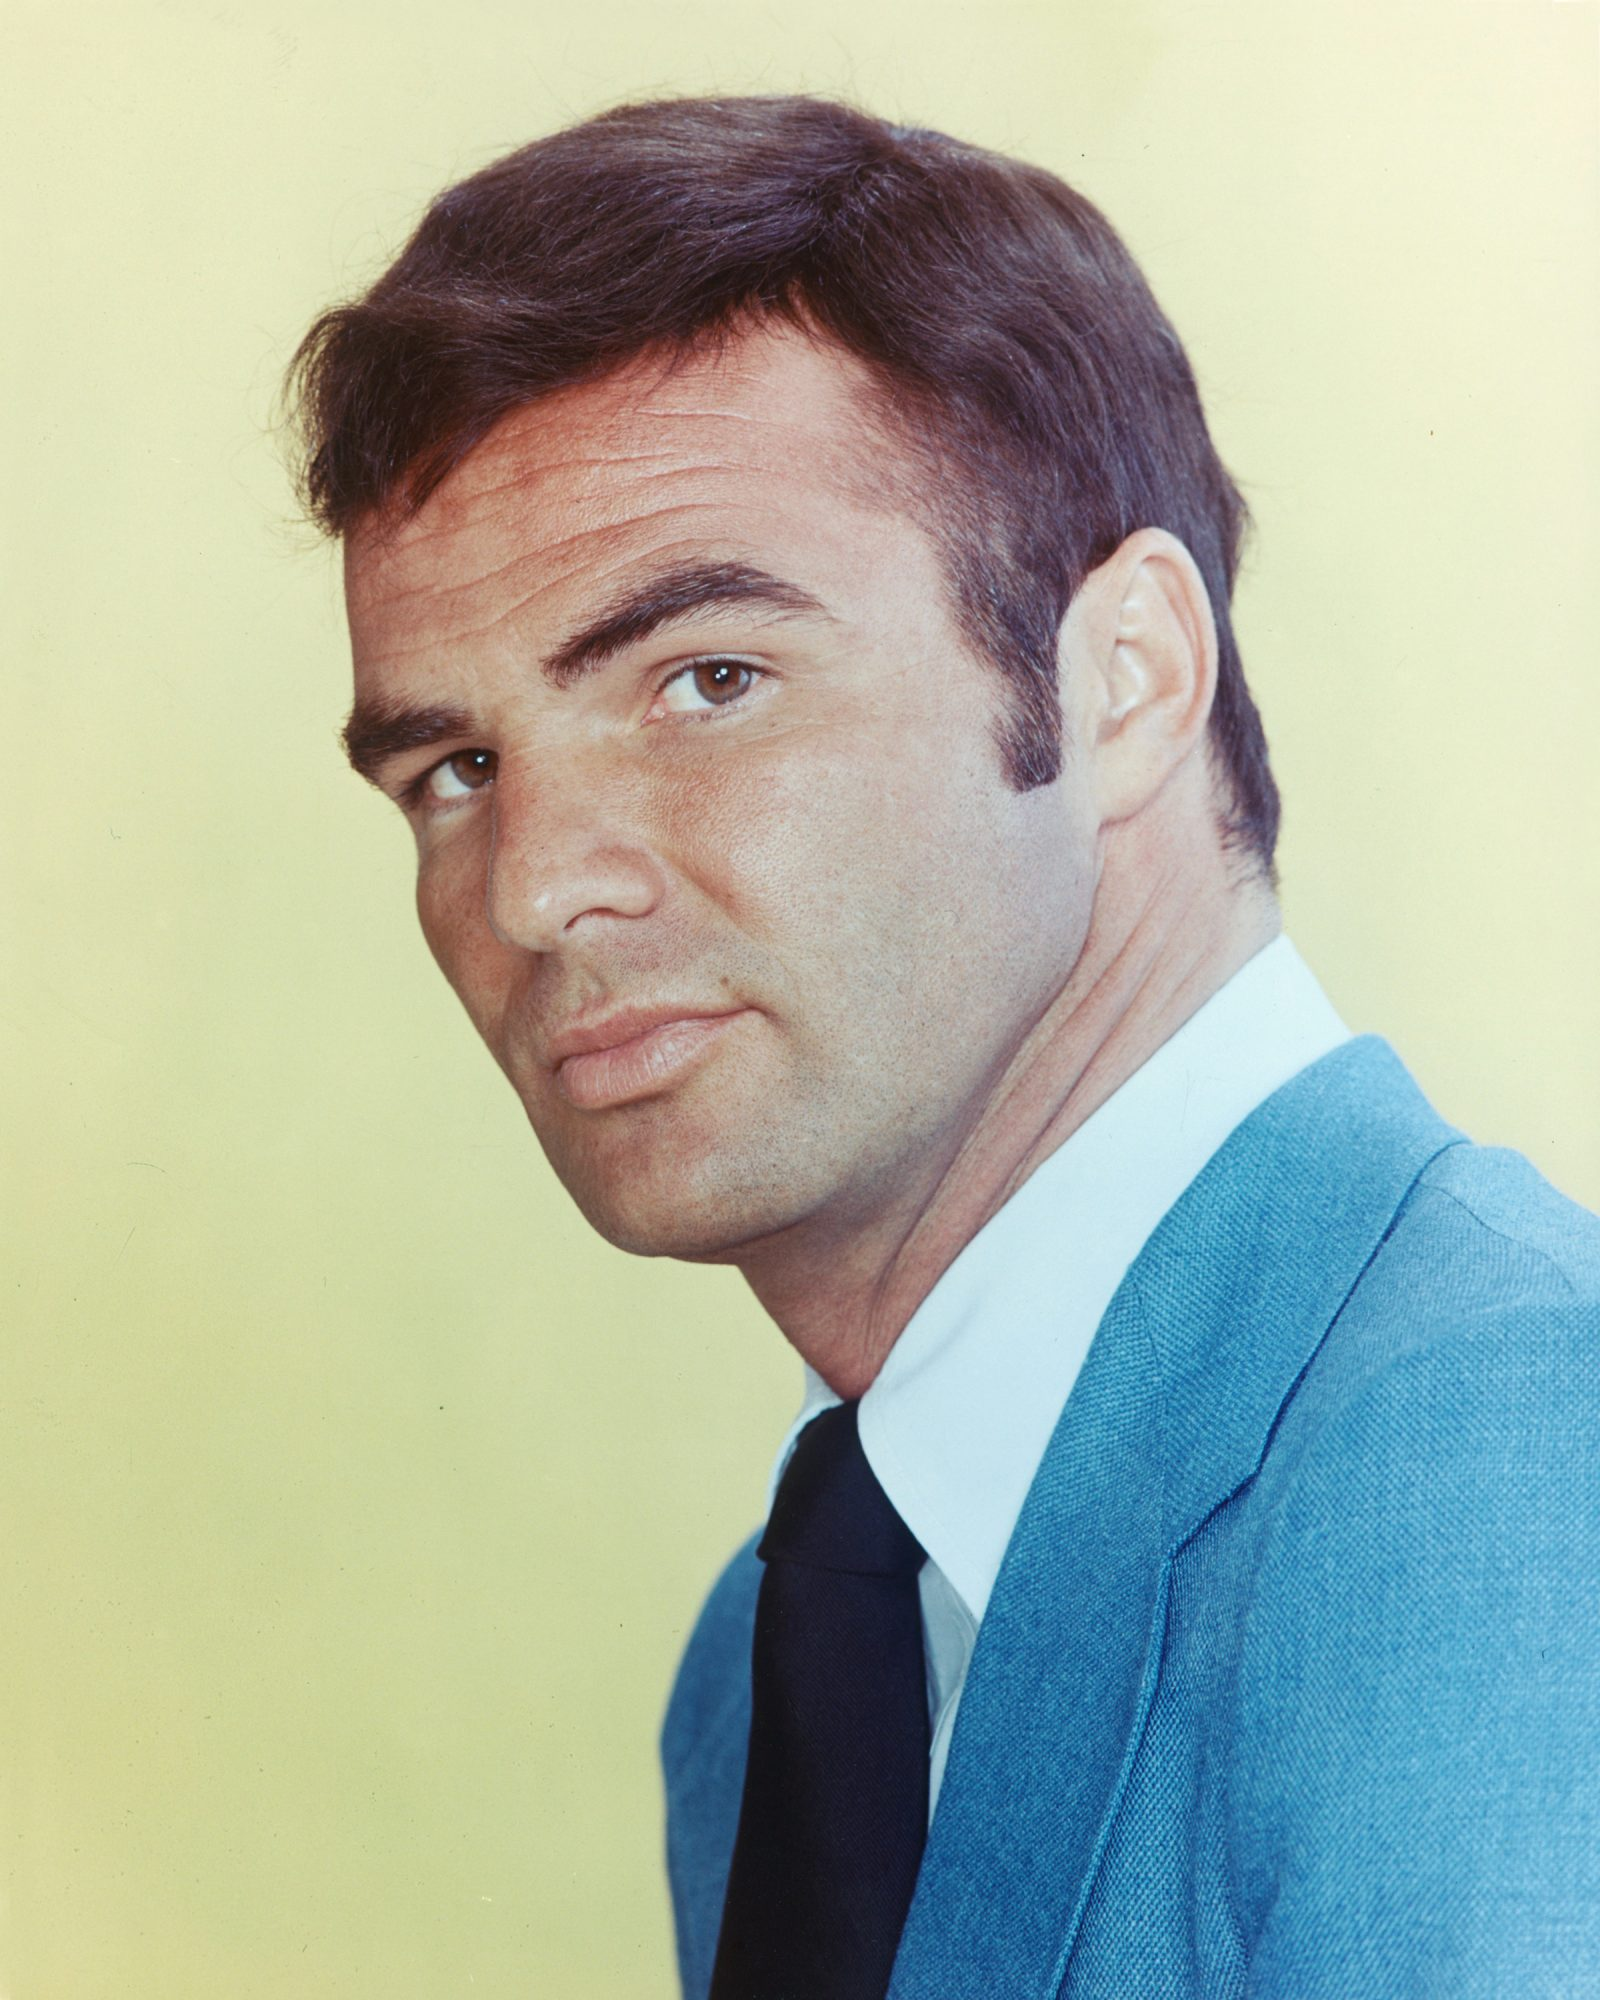 Do you like a clean-faced Burt Reynolds?